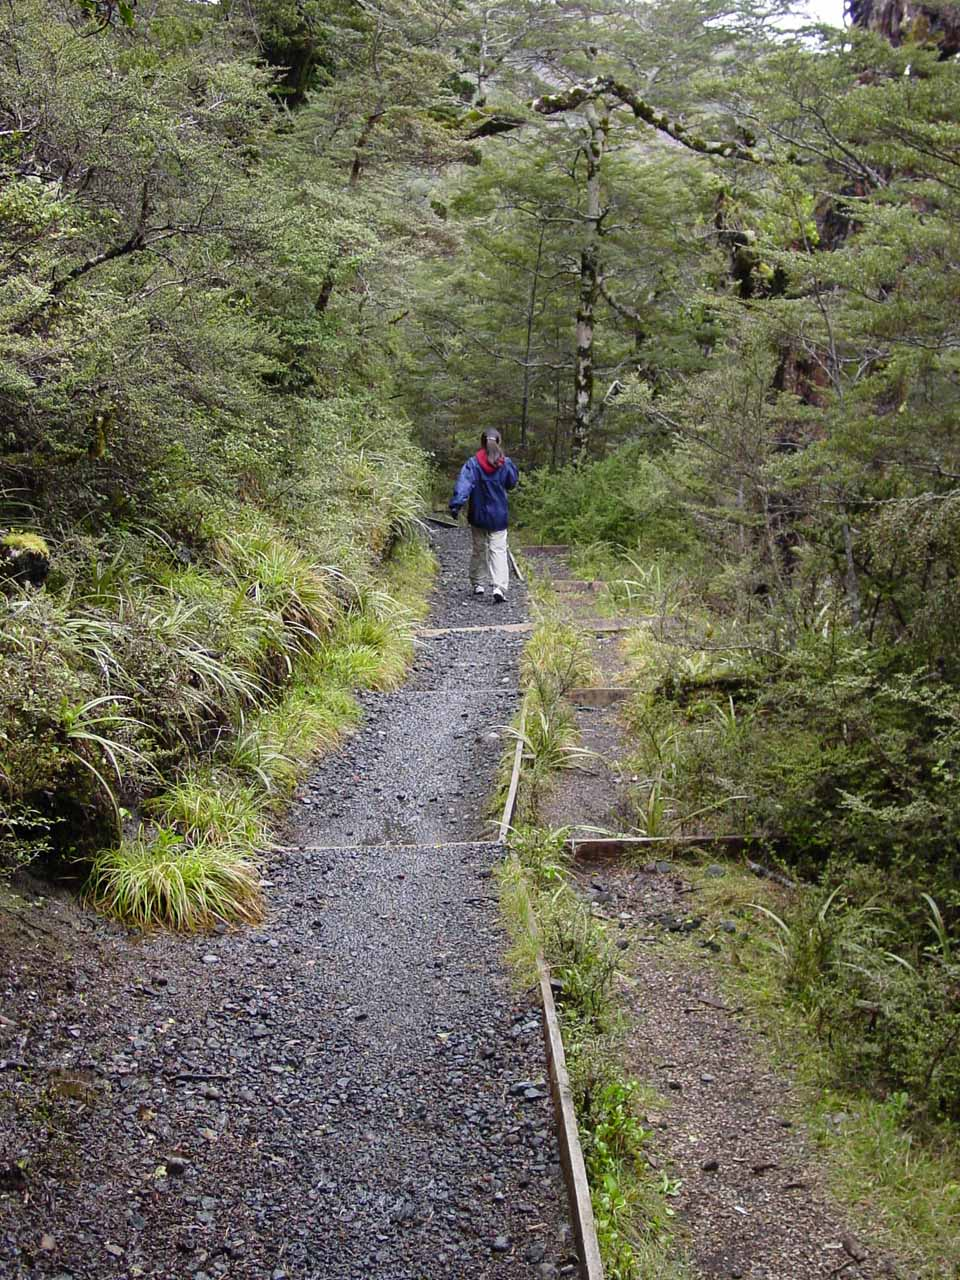 On the Waitonga Falls Track beyond the scenic bog